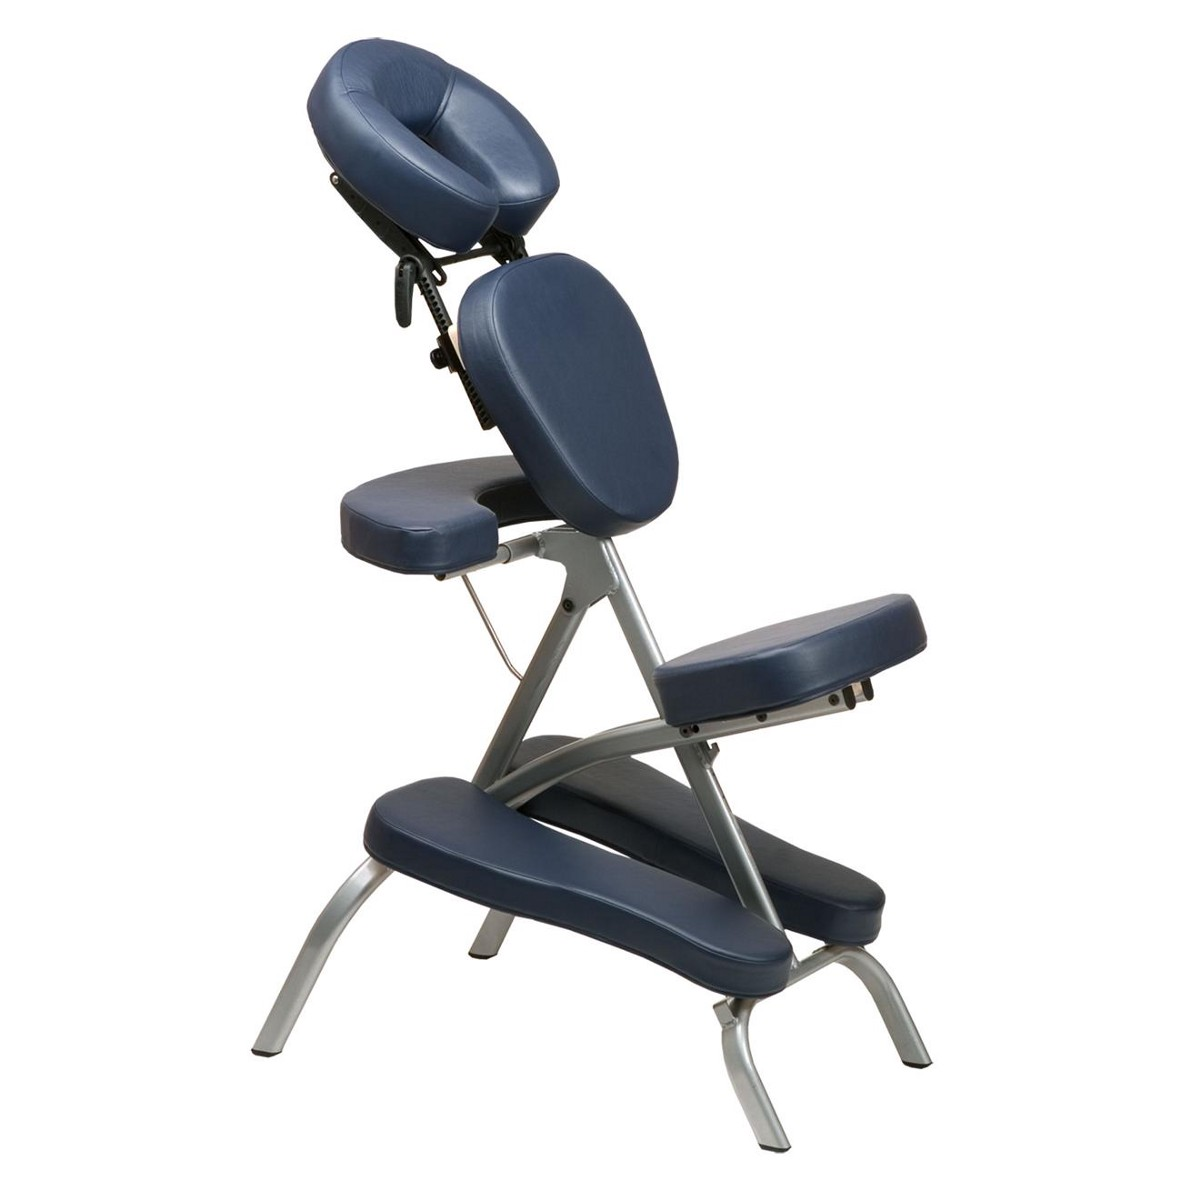 best portable massage chair hanging amazon 10 minutes in a nail salon is kind of like